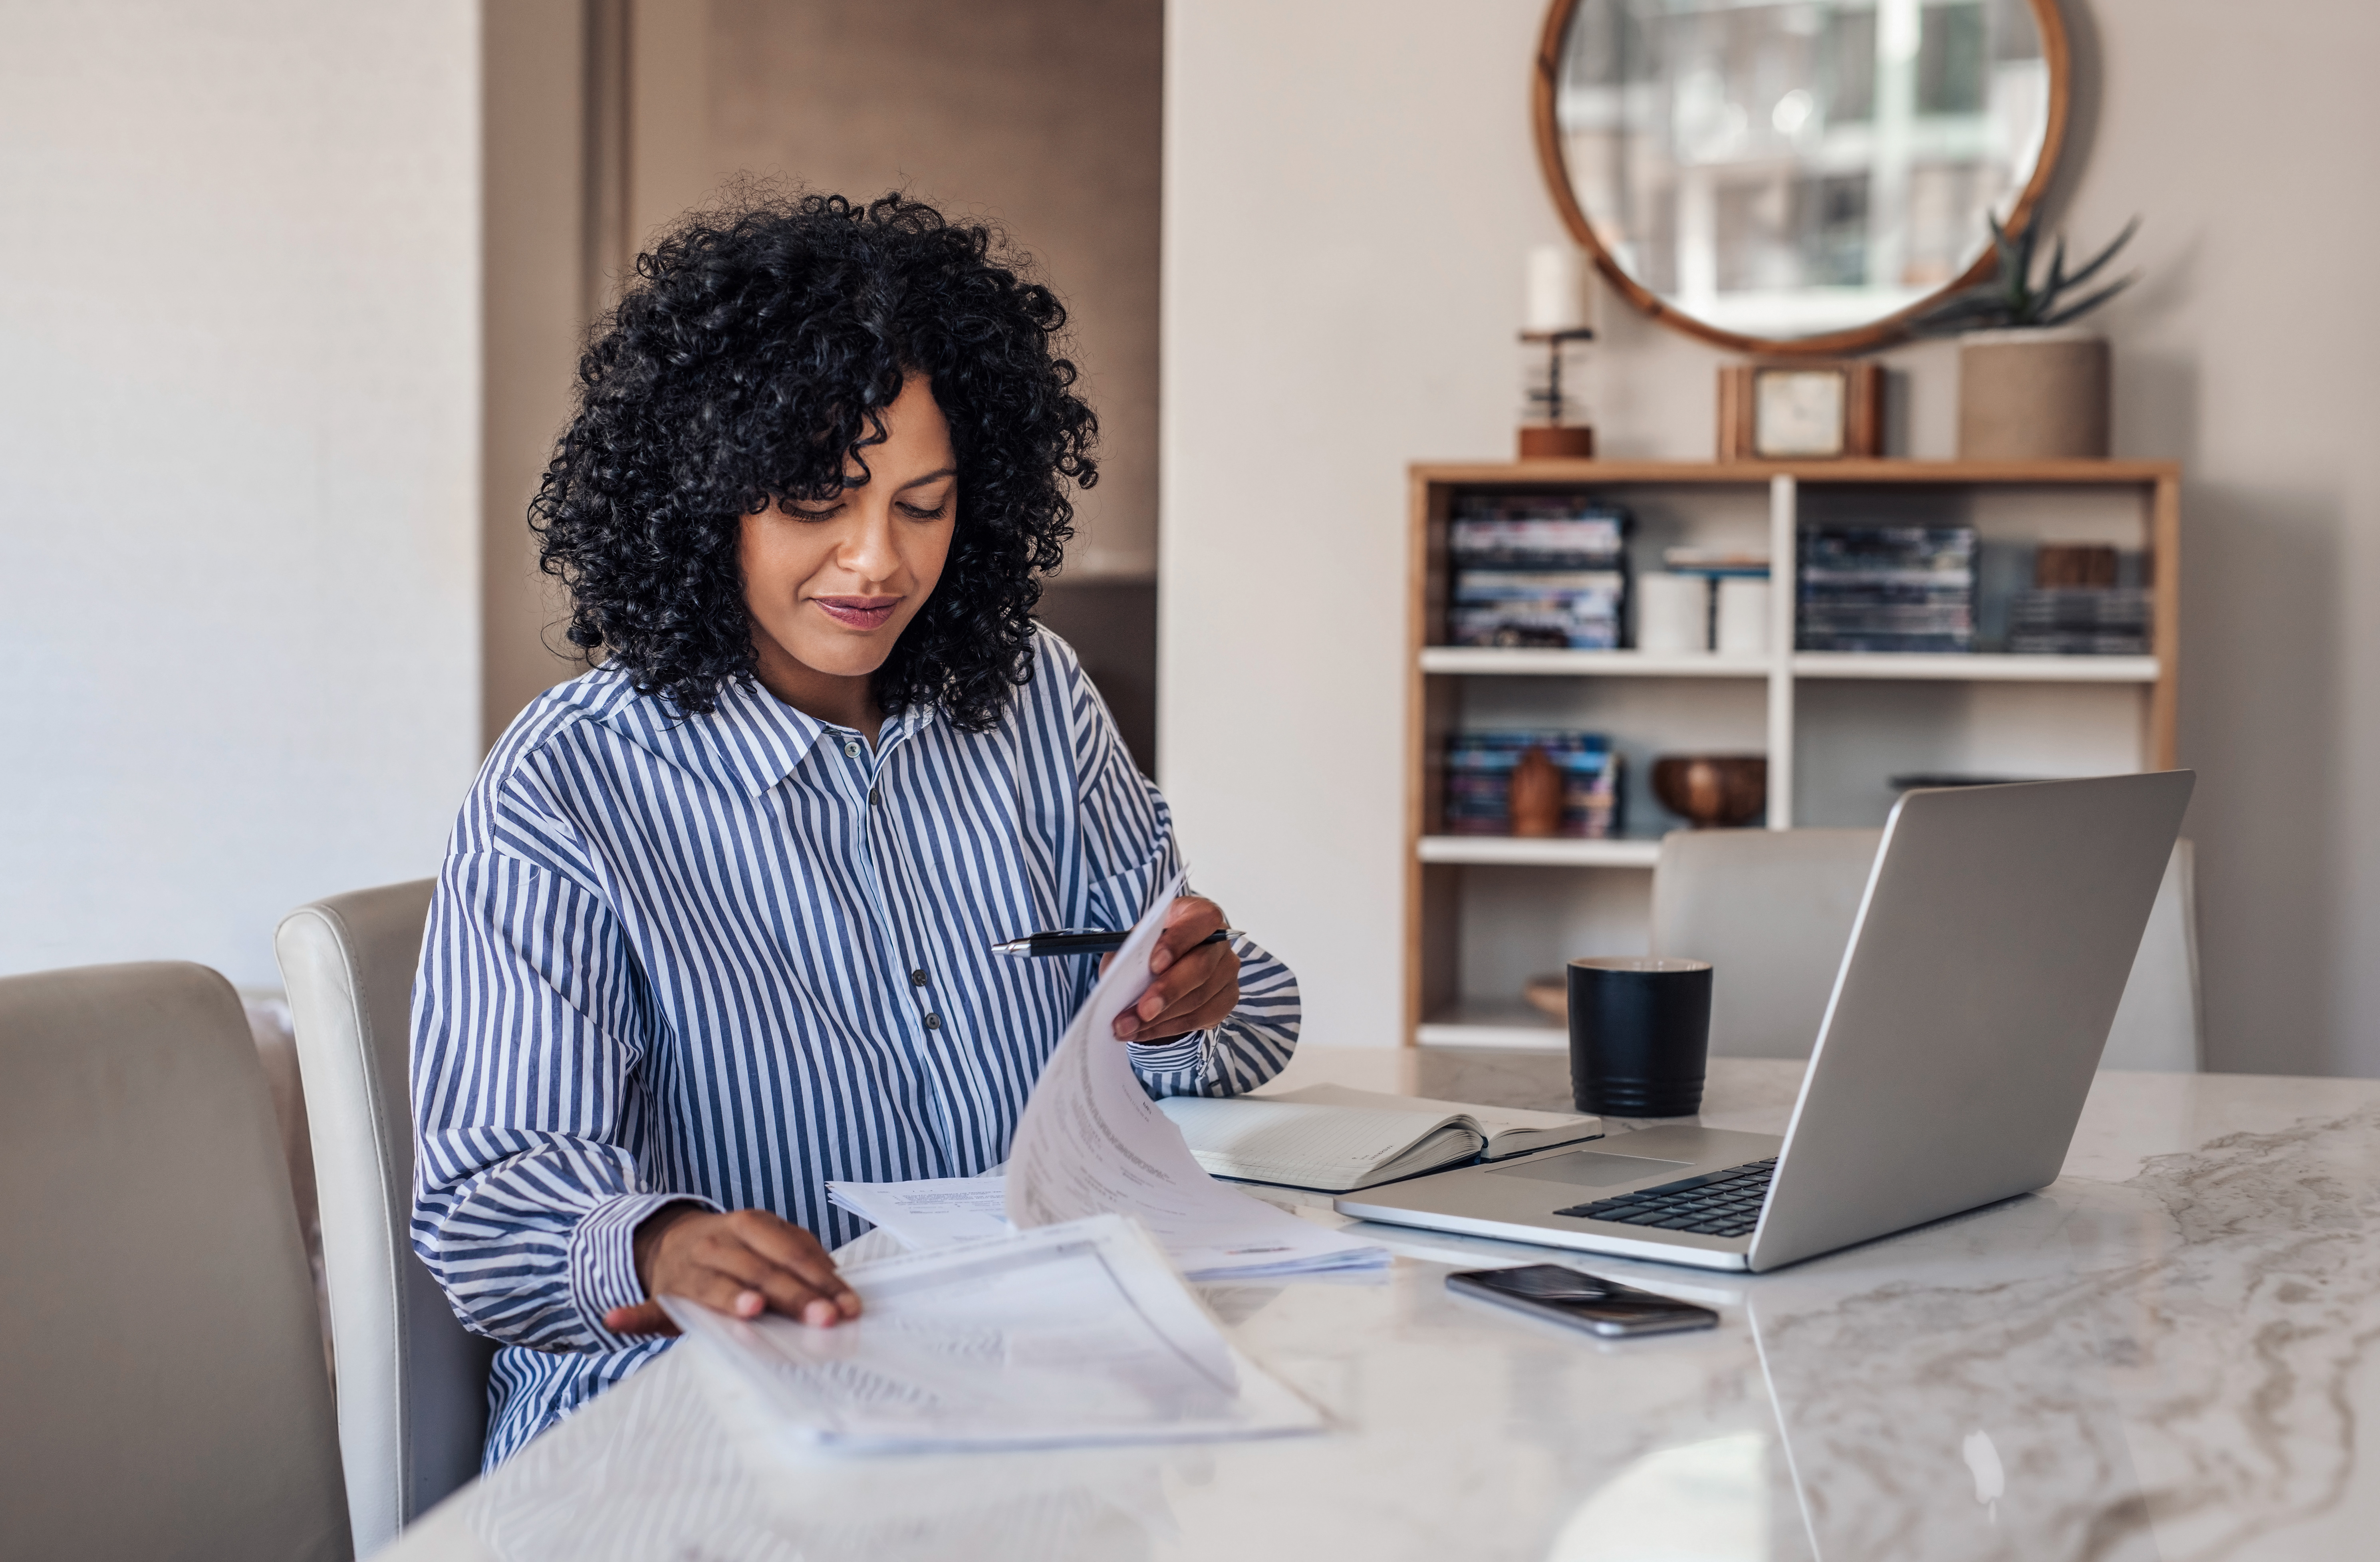 7 Things You Must Do to Be Productive When Working From Home